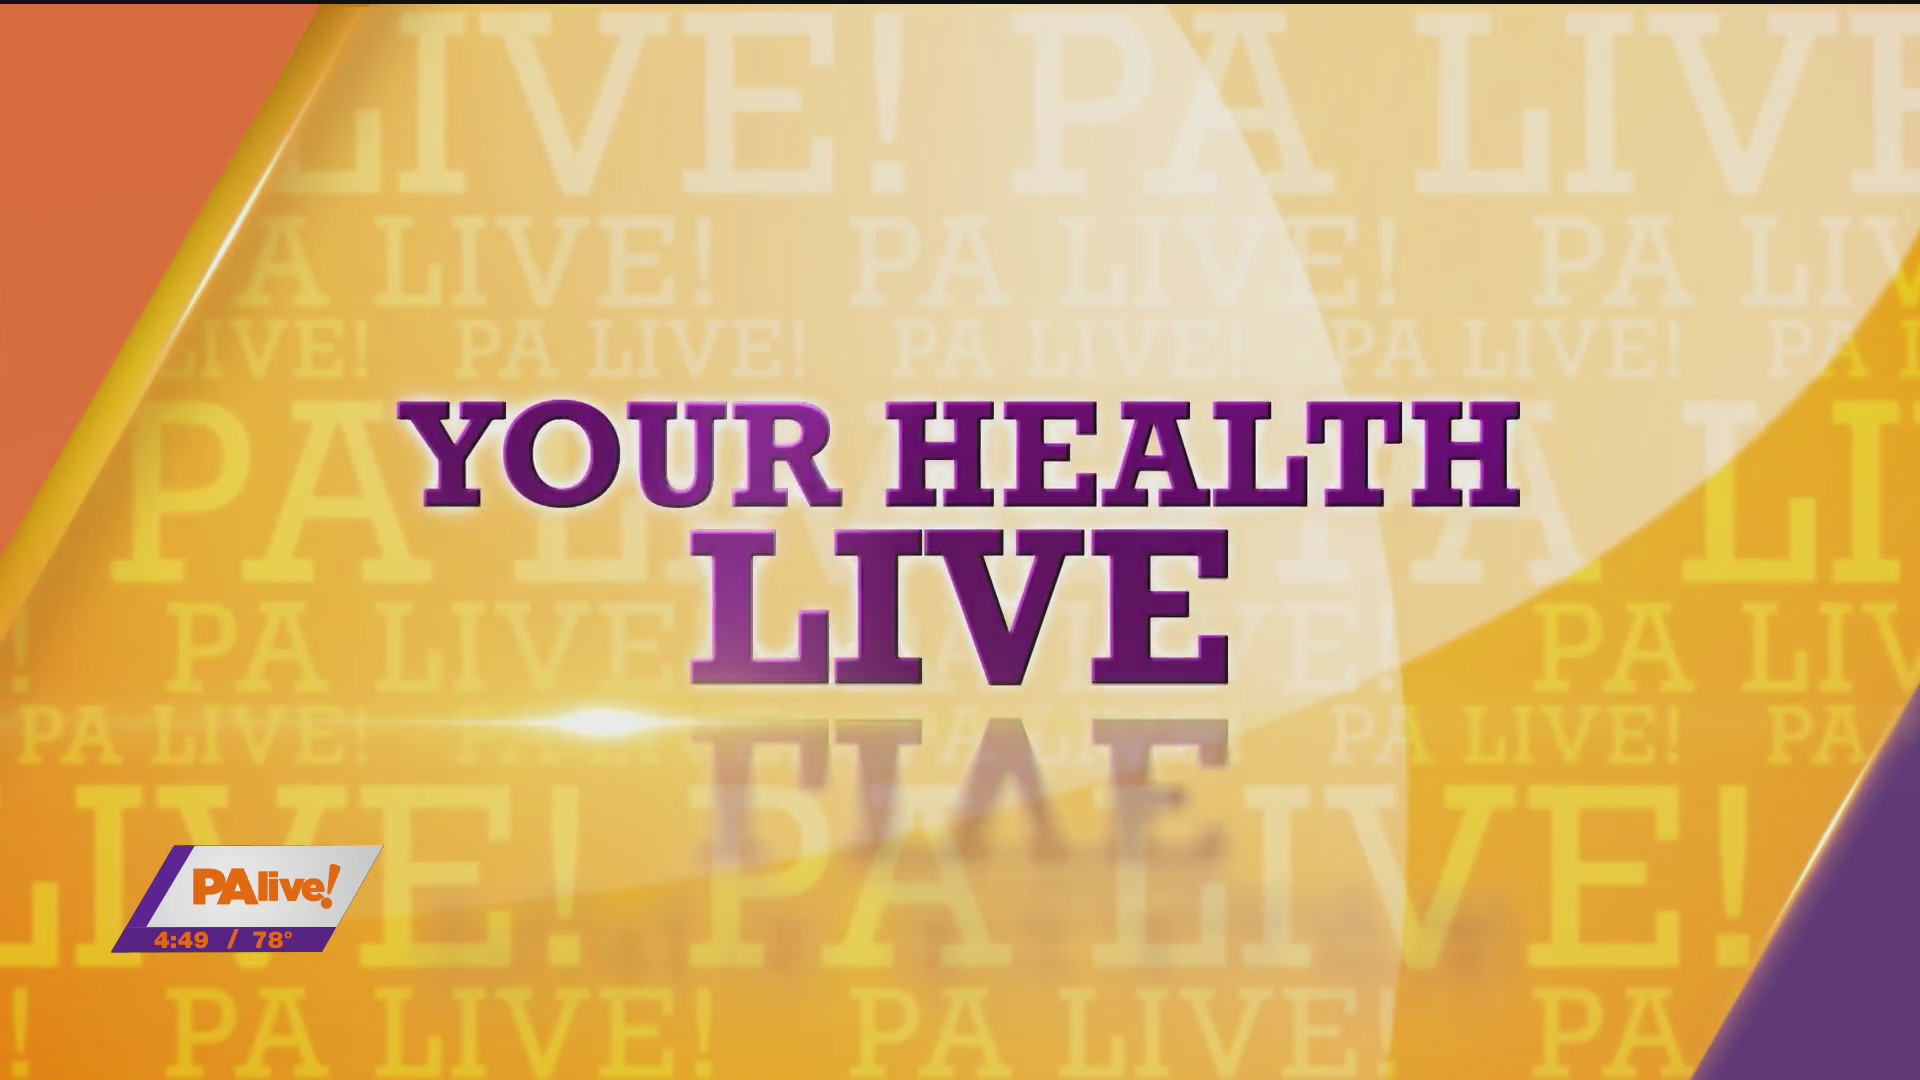 PAlive! Your Health Live (St. Luke's Hospitalist Group) August 19, 2020